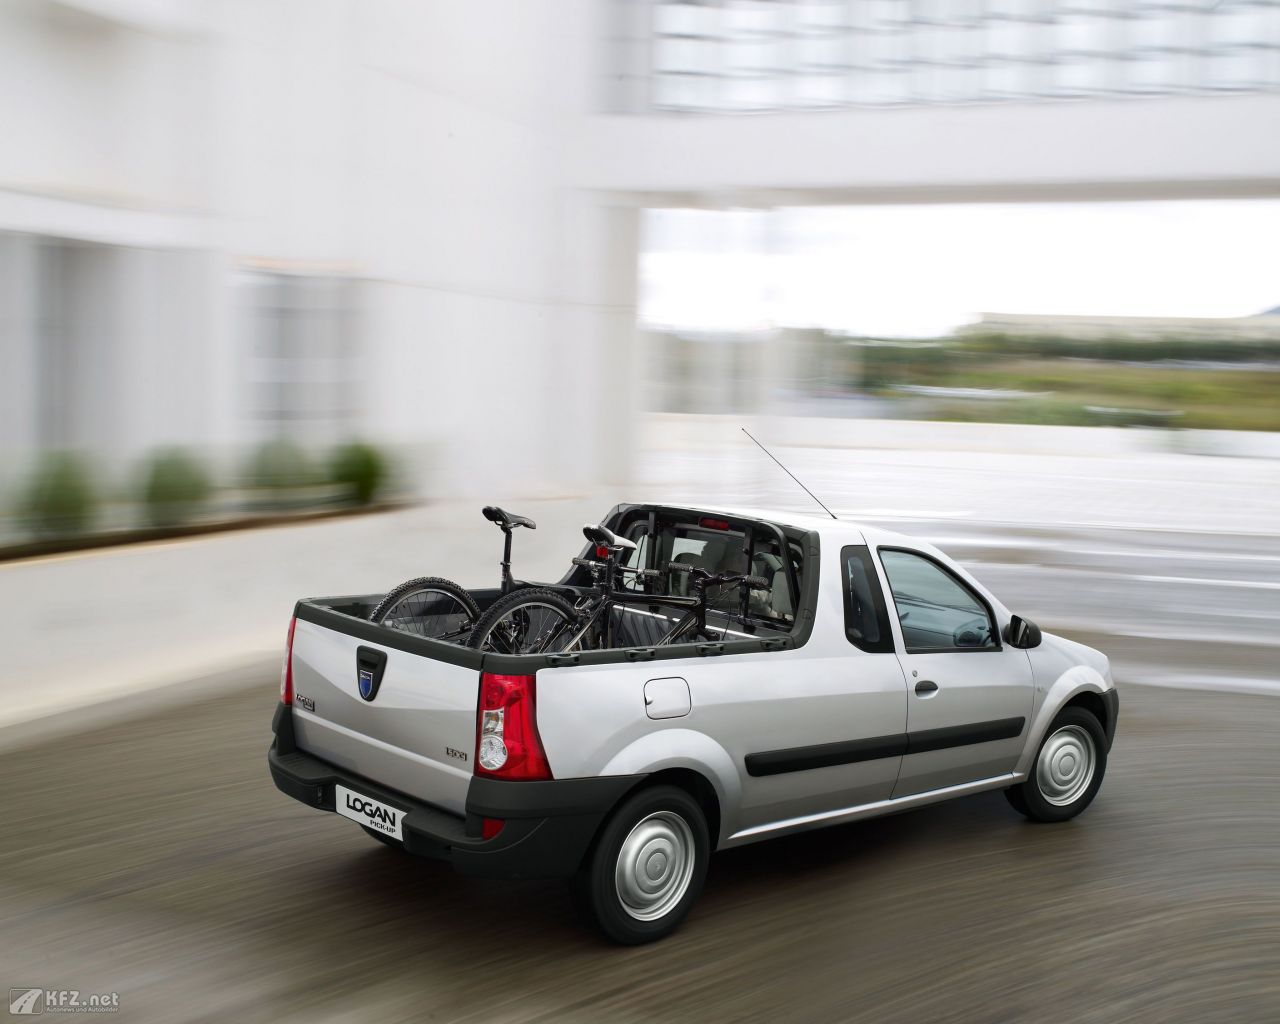 dacia-pick-up-1280x1024-111